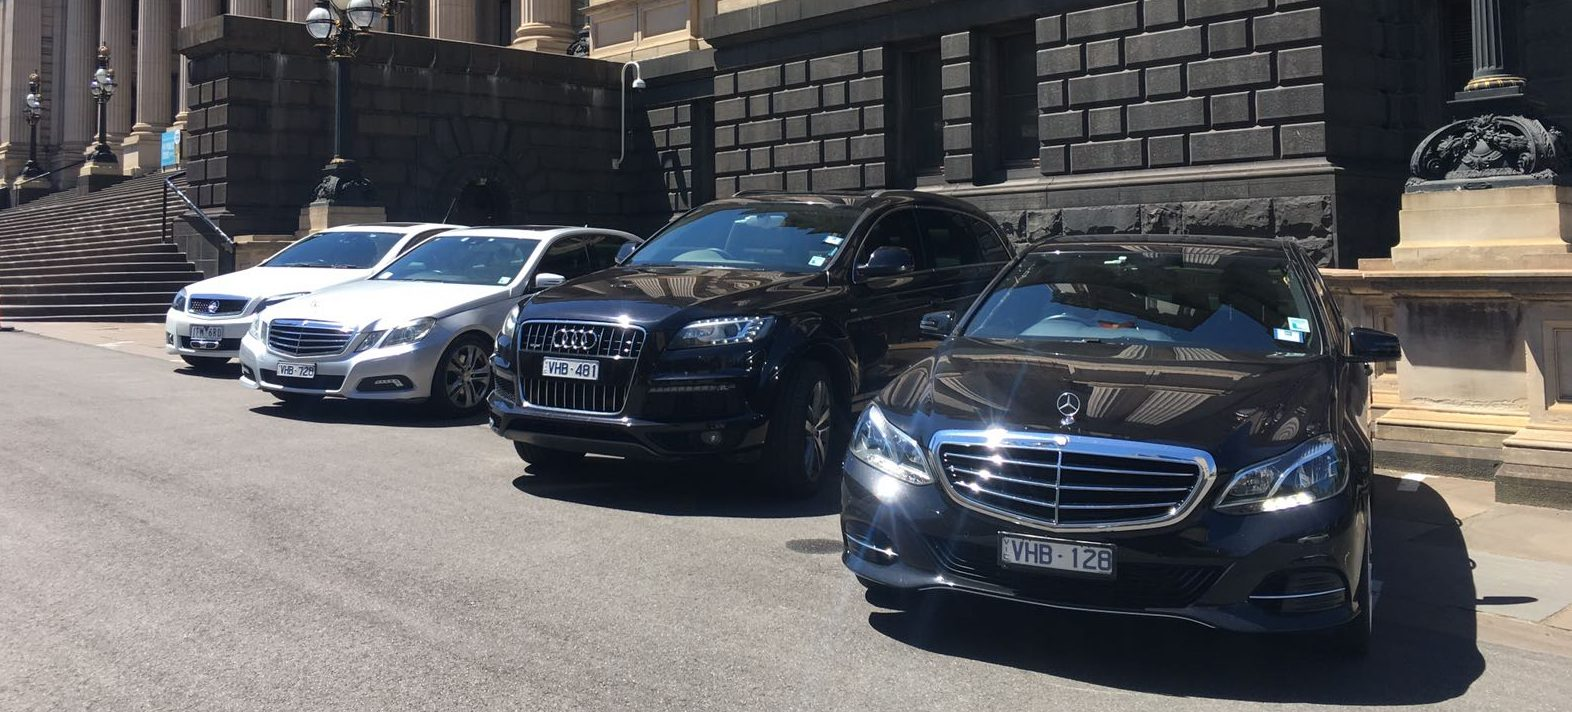 Melbourne Chauffeured Limousines chauffeur cars